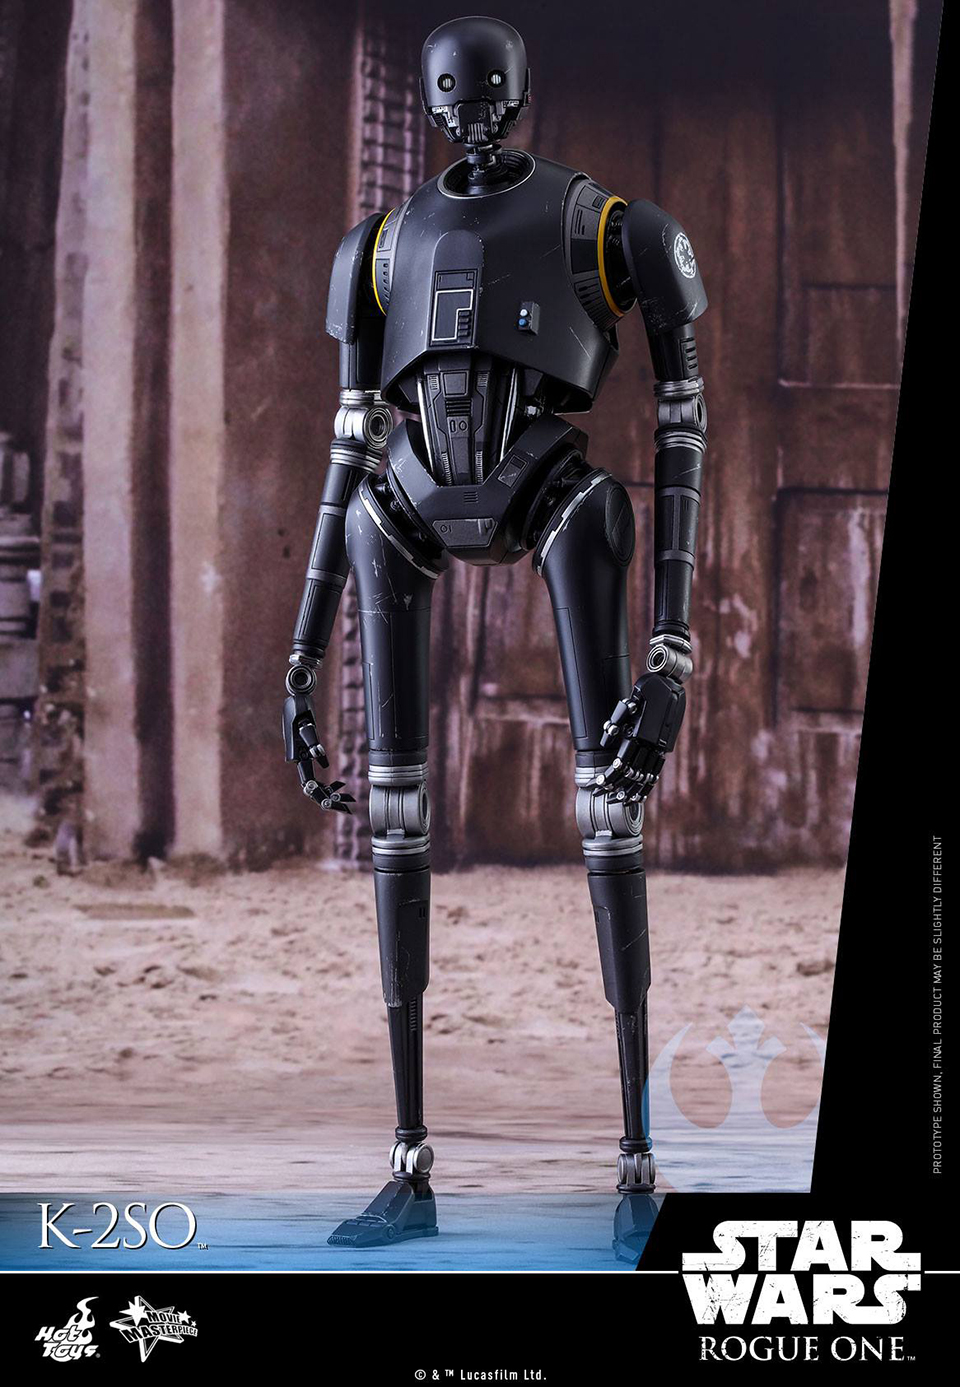 Hot Toys Rogue One K-2SO 1/6 Scale Action Figure